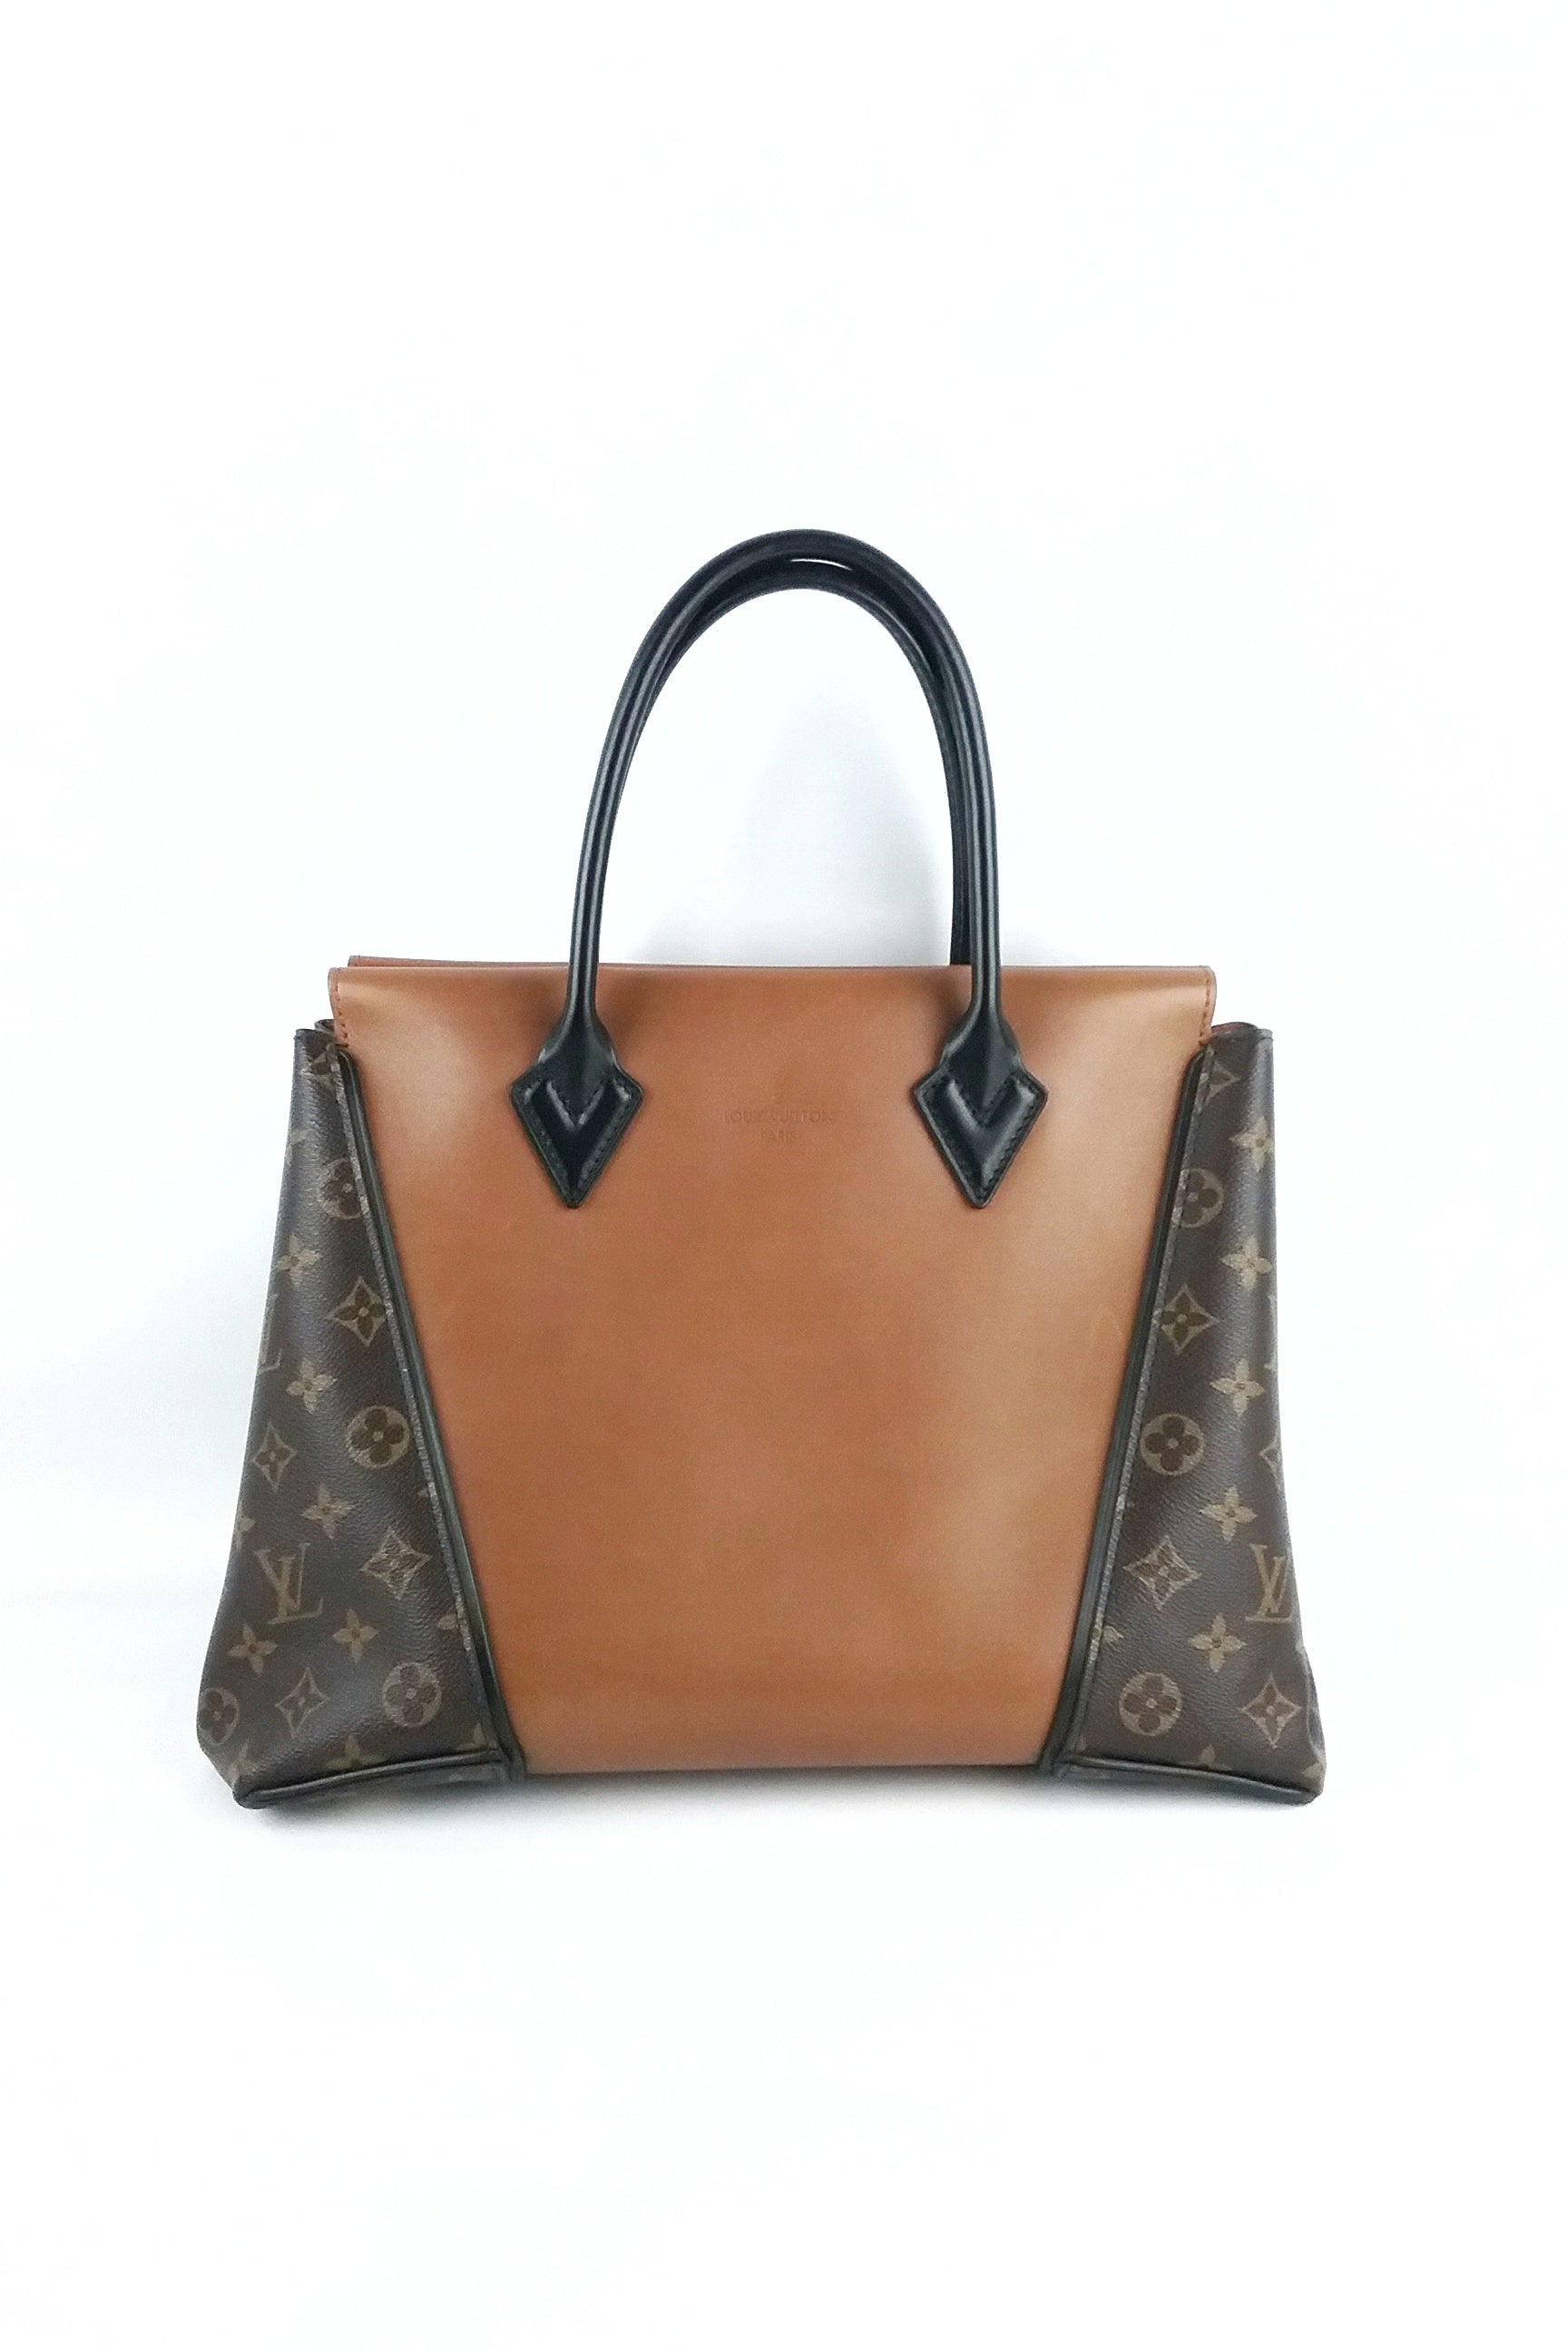 Monogram Canvas Leather W Tote